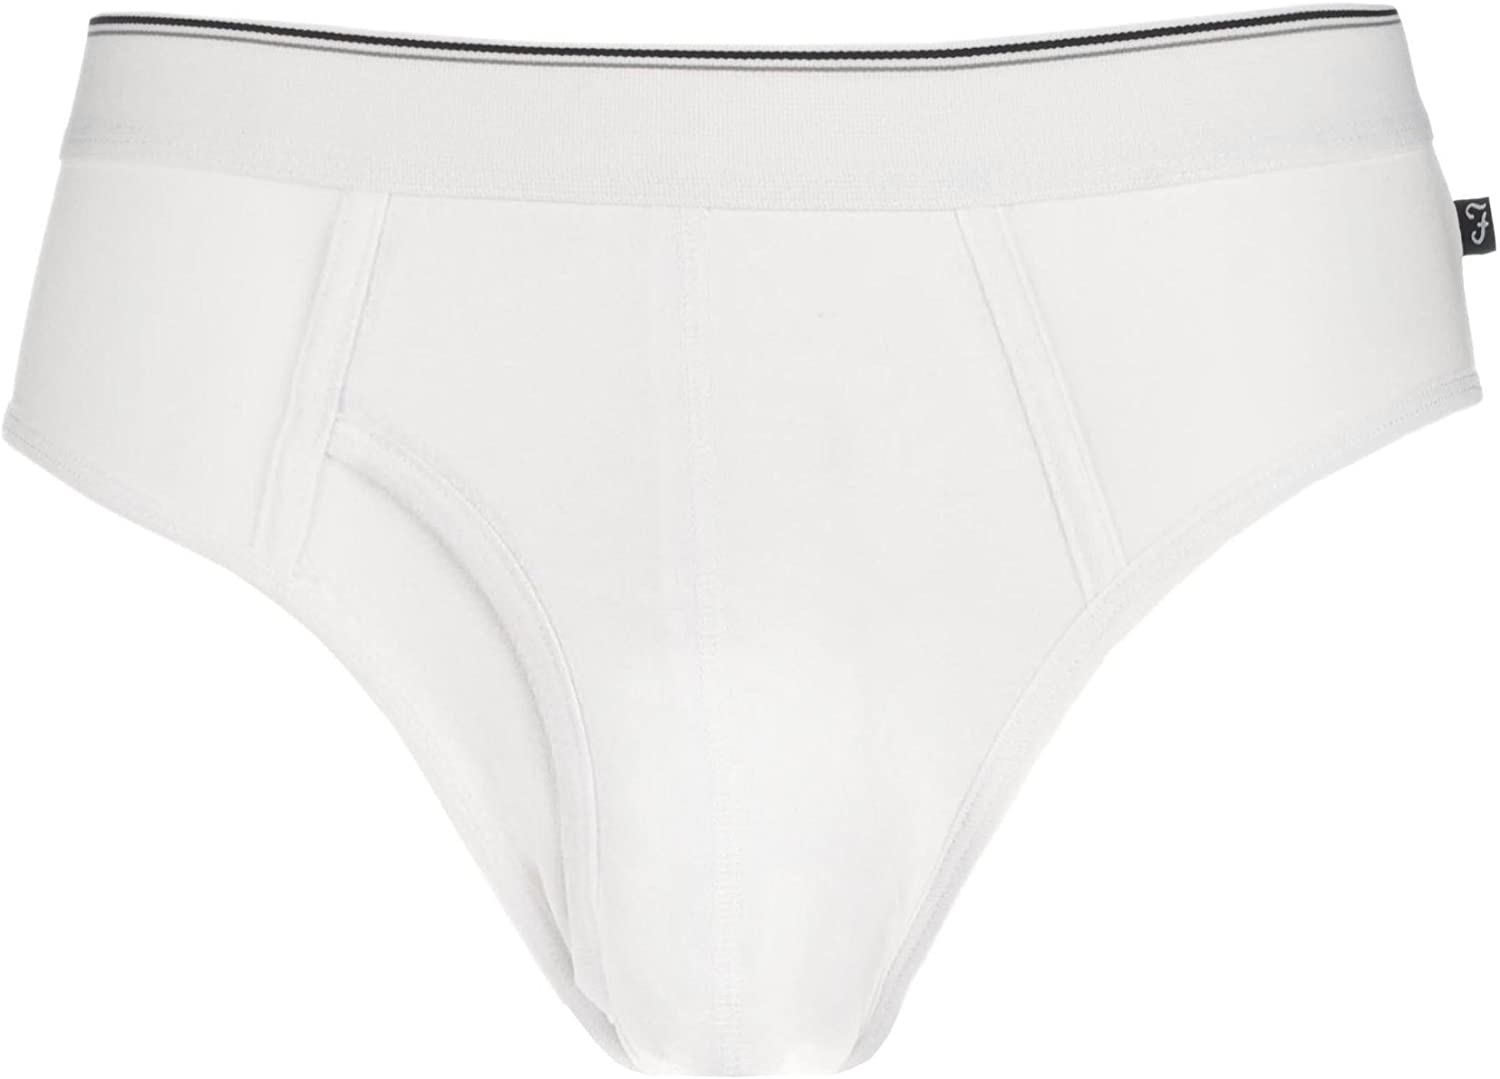 FARAH Mens 2 Pack Keyhole Briefs